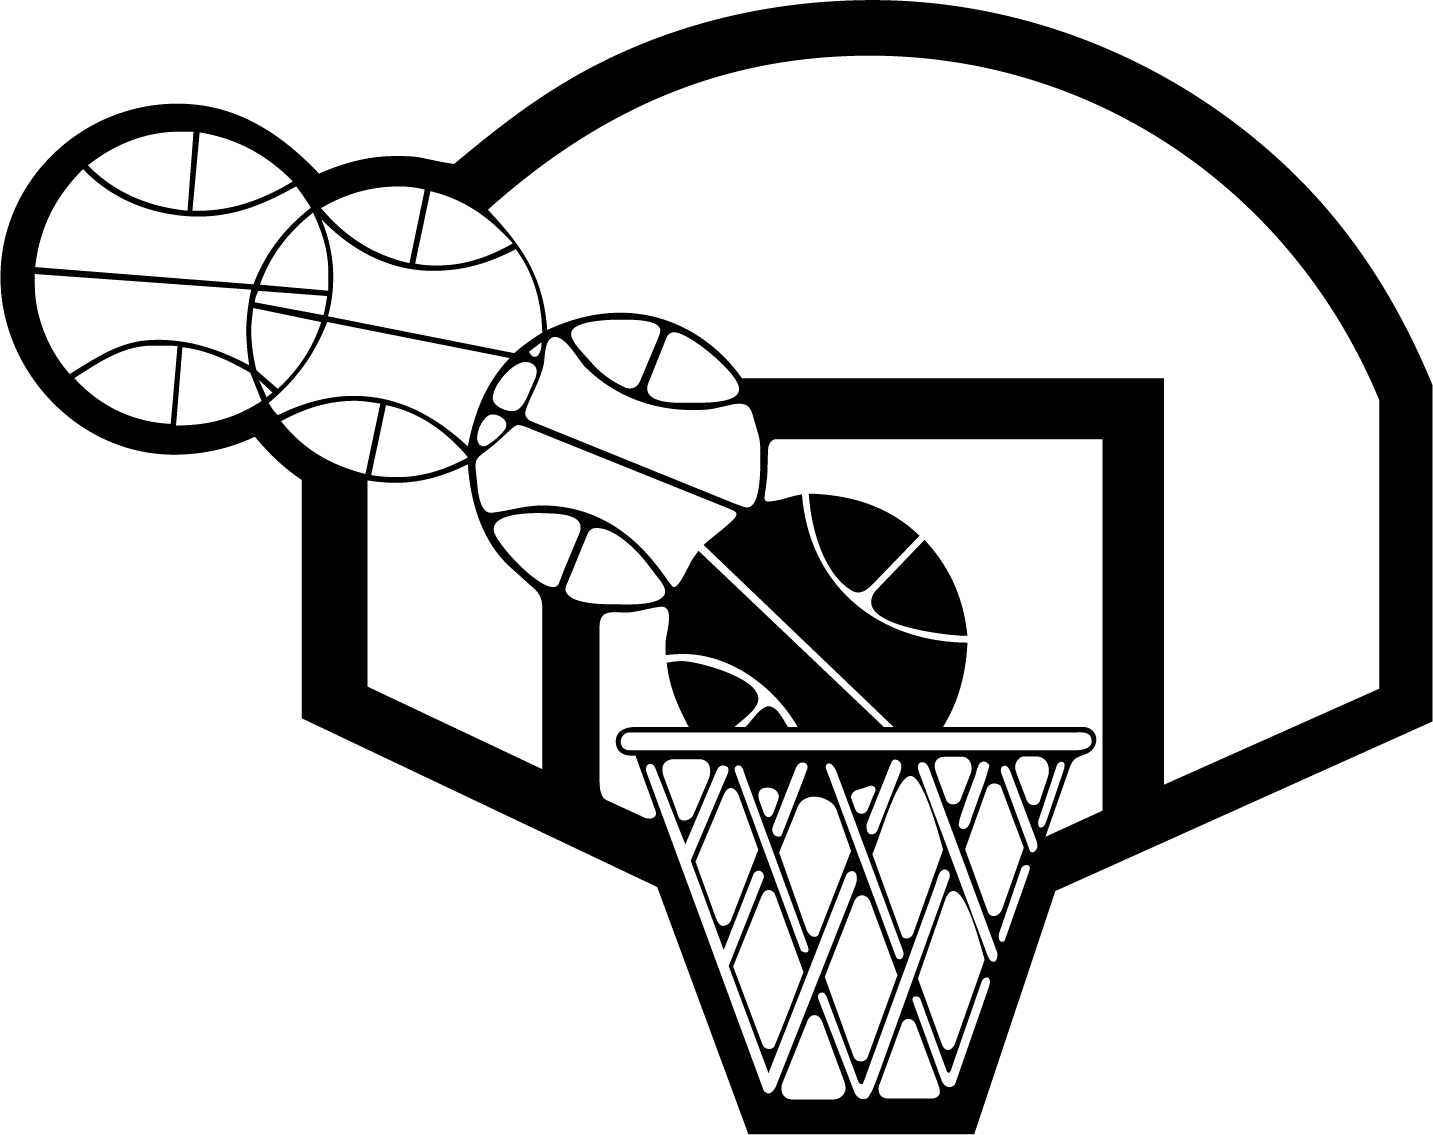 Black and white basketball hoop clipart clipart library stock North Carolina Tar Heels mens basketball Backboard Clip art - White ... clipart library stock